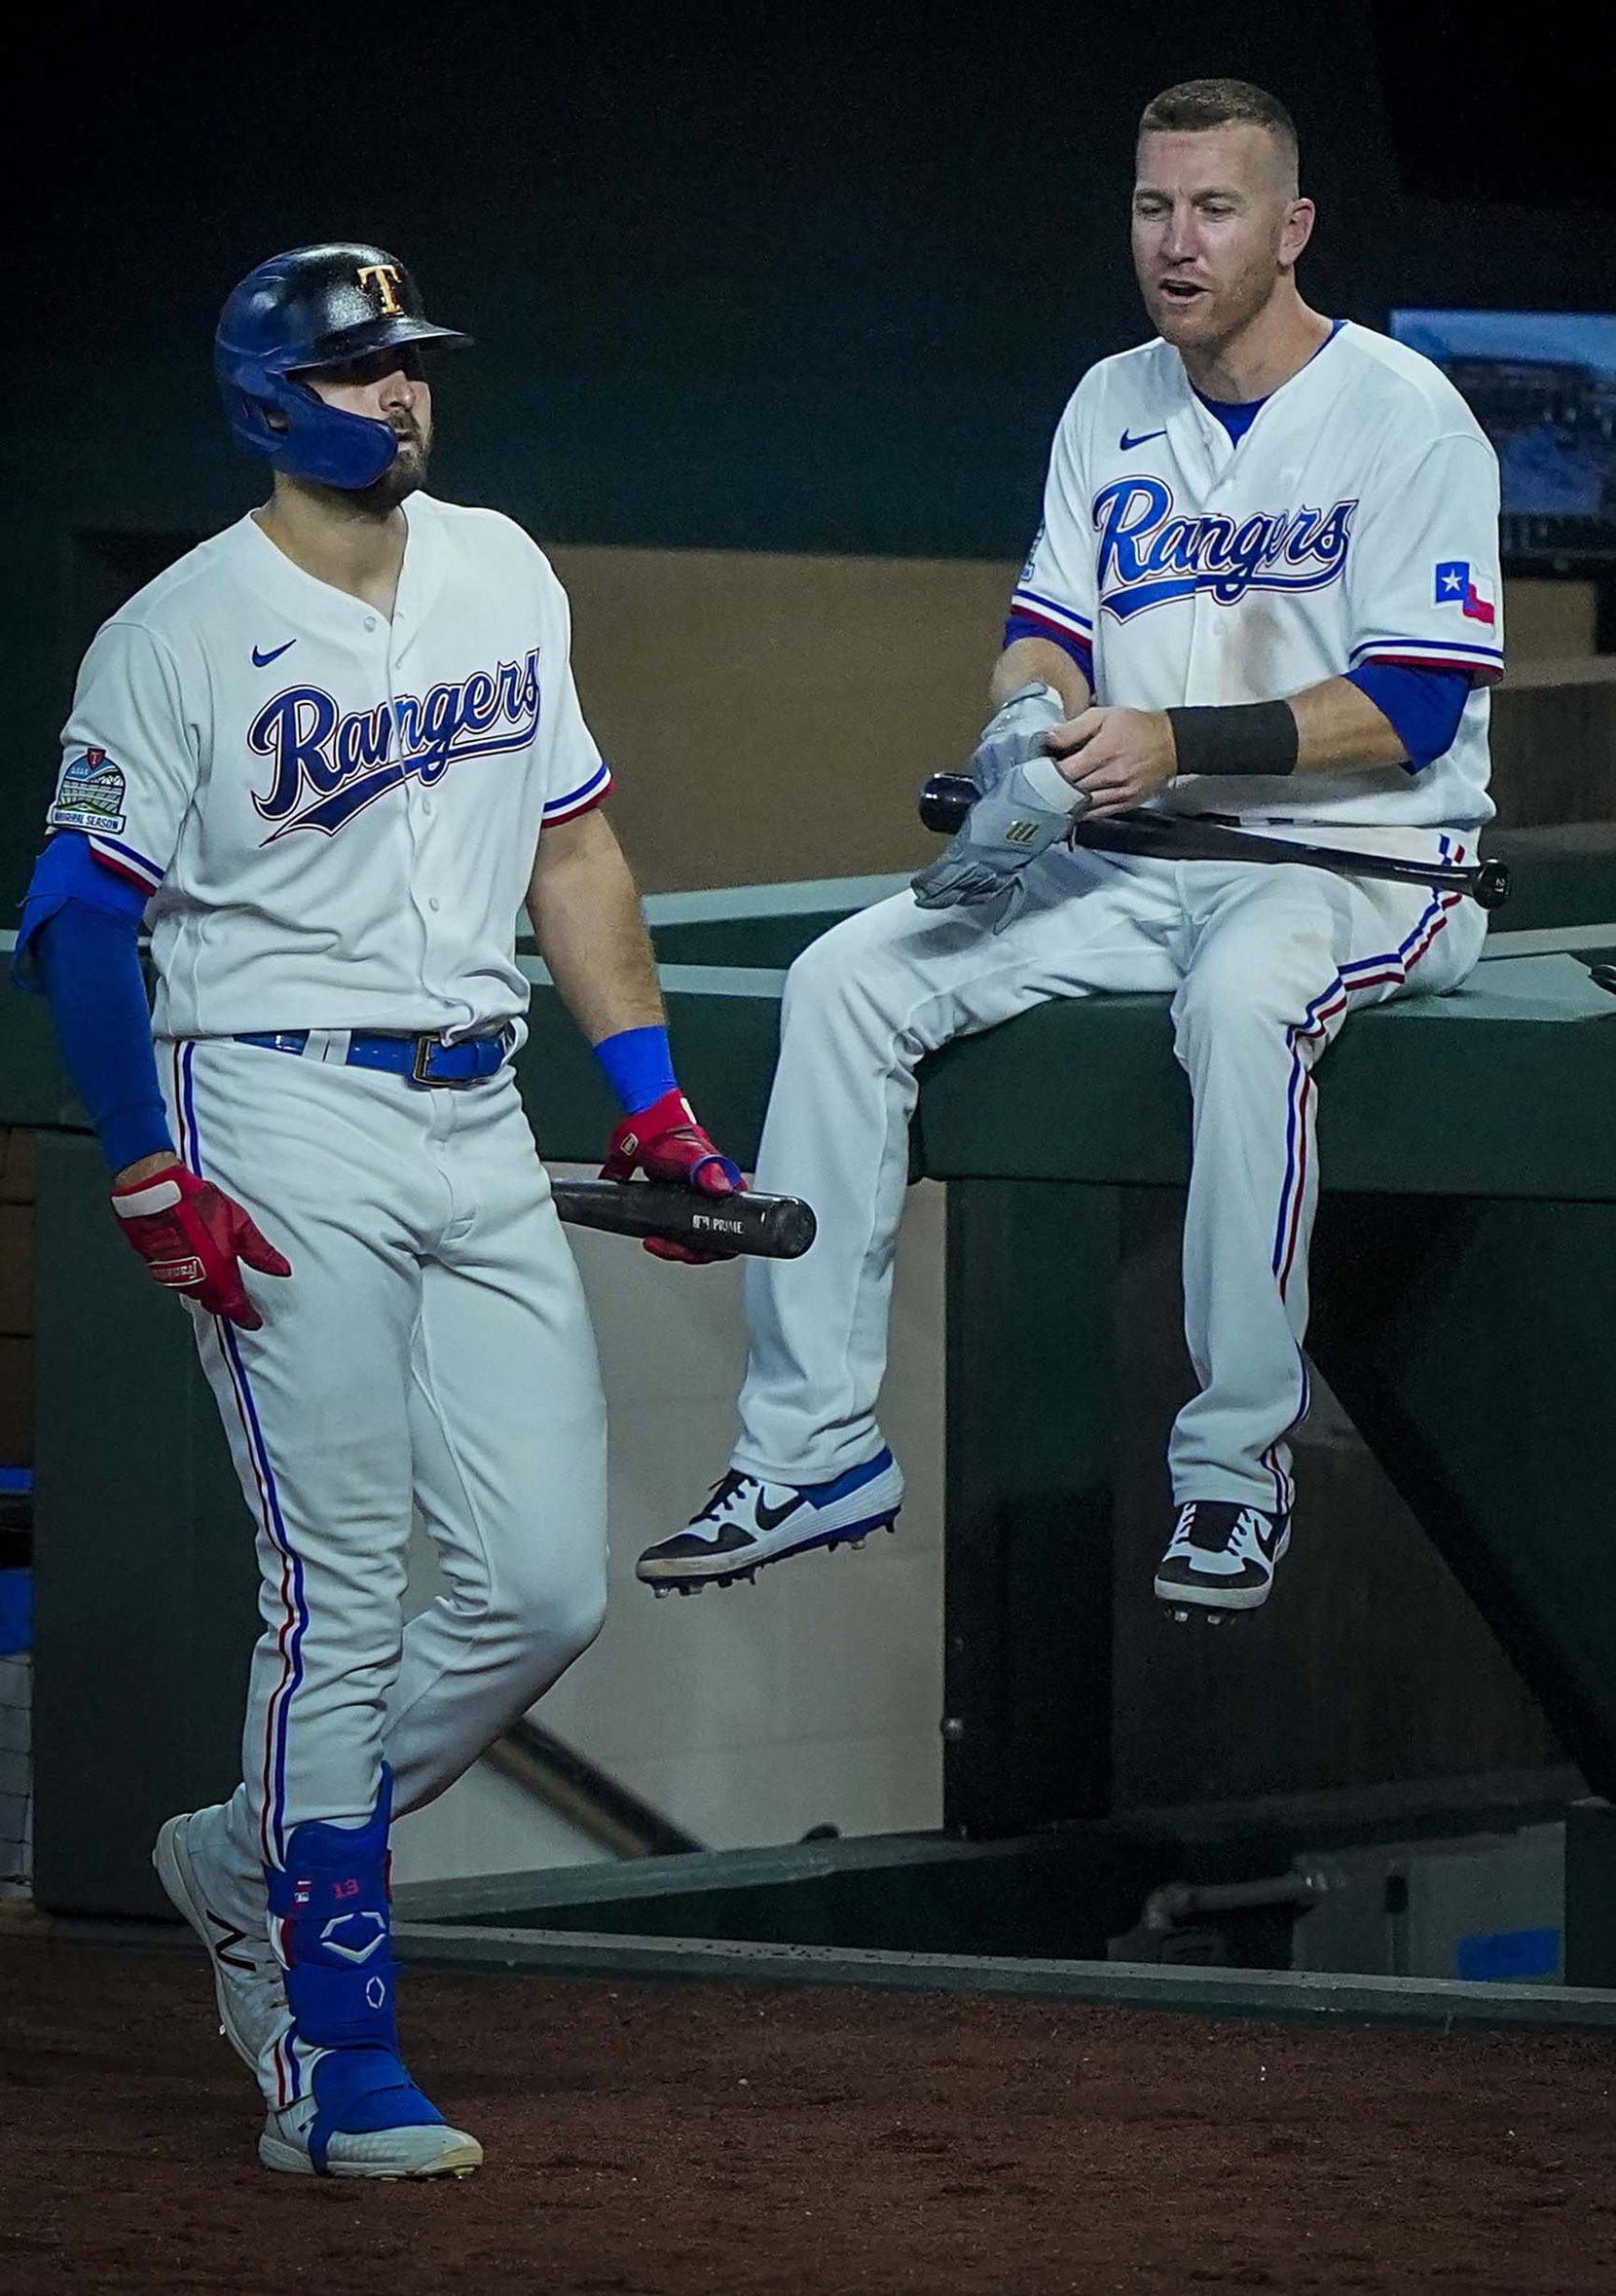 Outfielder Joey Gallo passes third baseman Todd Frazier perched atop the dugout rail as he heads to the plate during Texas Rangers Summer Camp at Globe Life Field on Thursday, July 16, 2020.